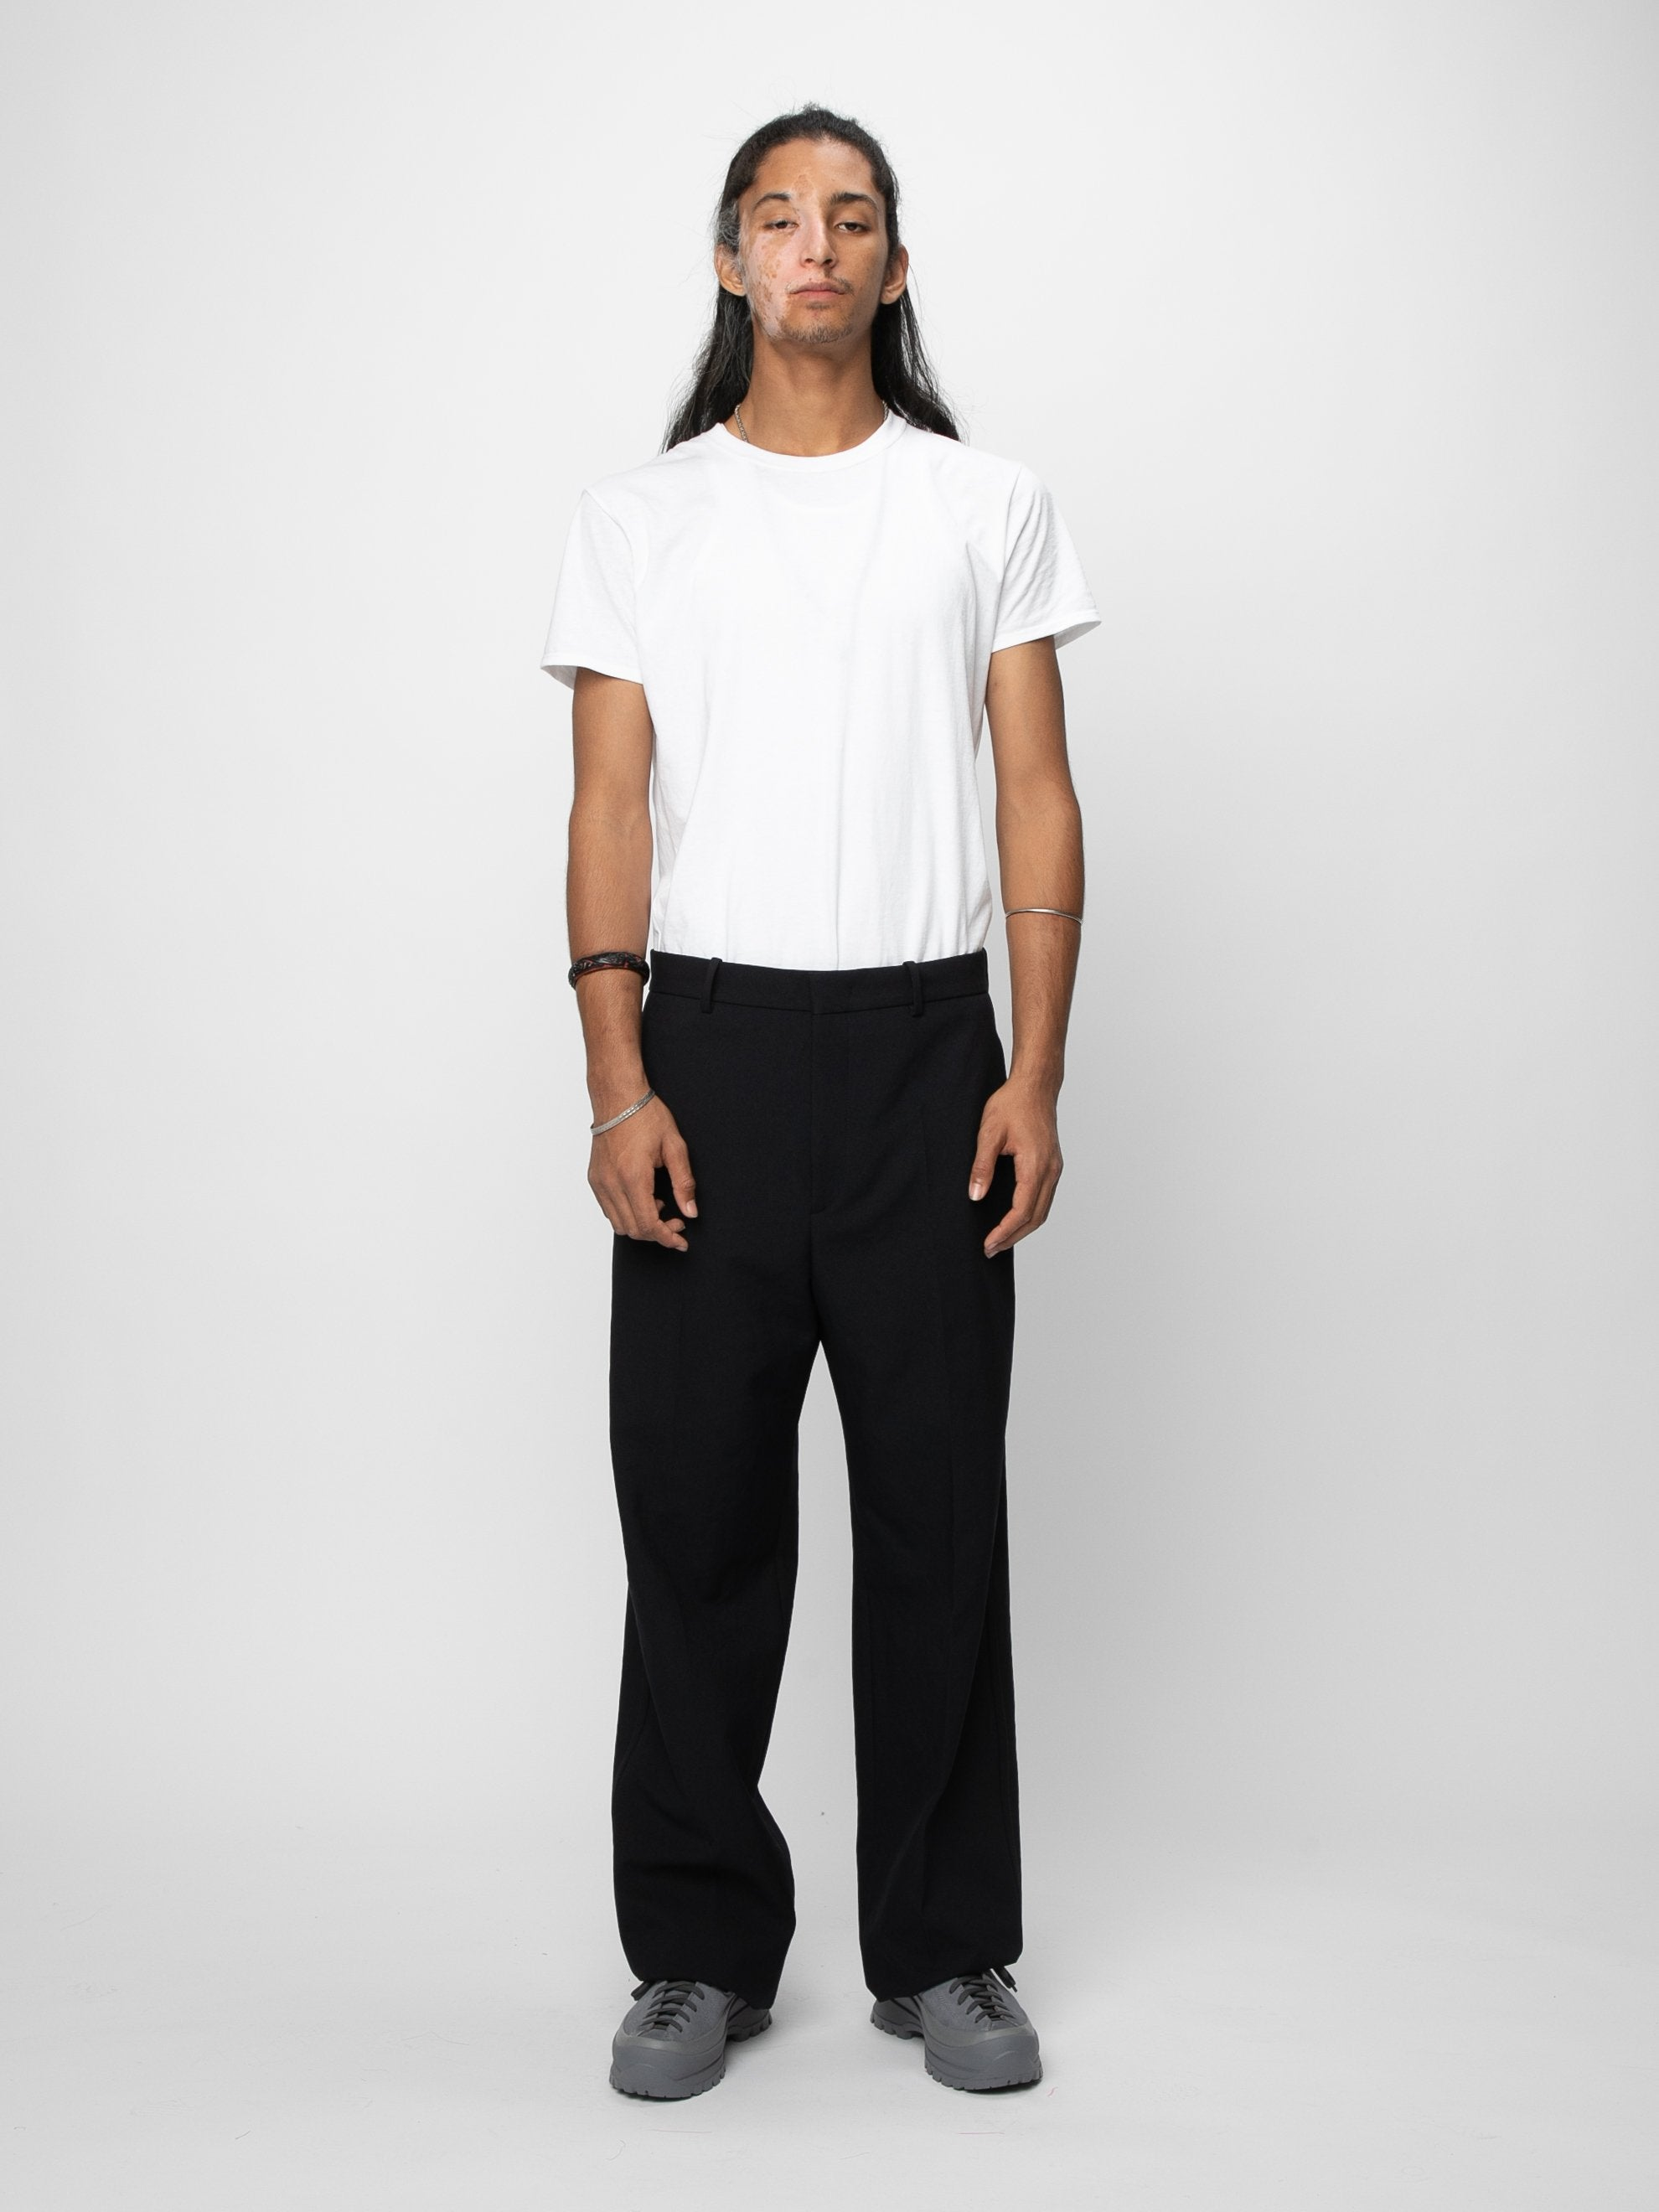 Midnight Thirsk S.25 Pant 3